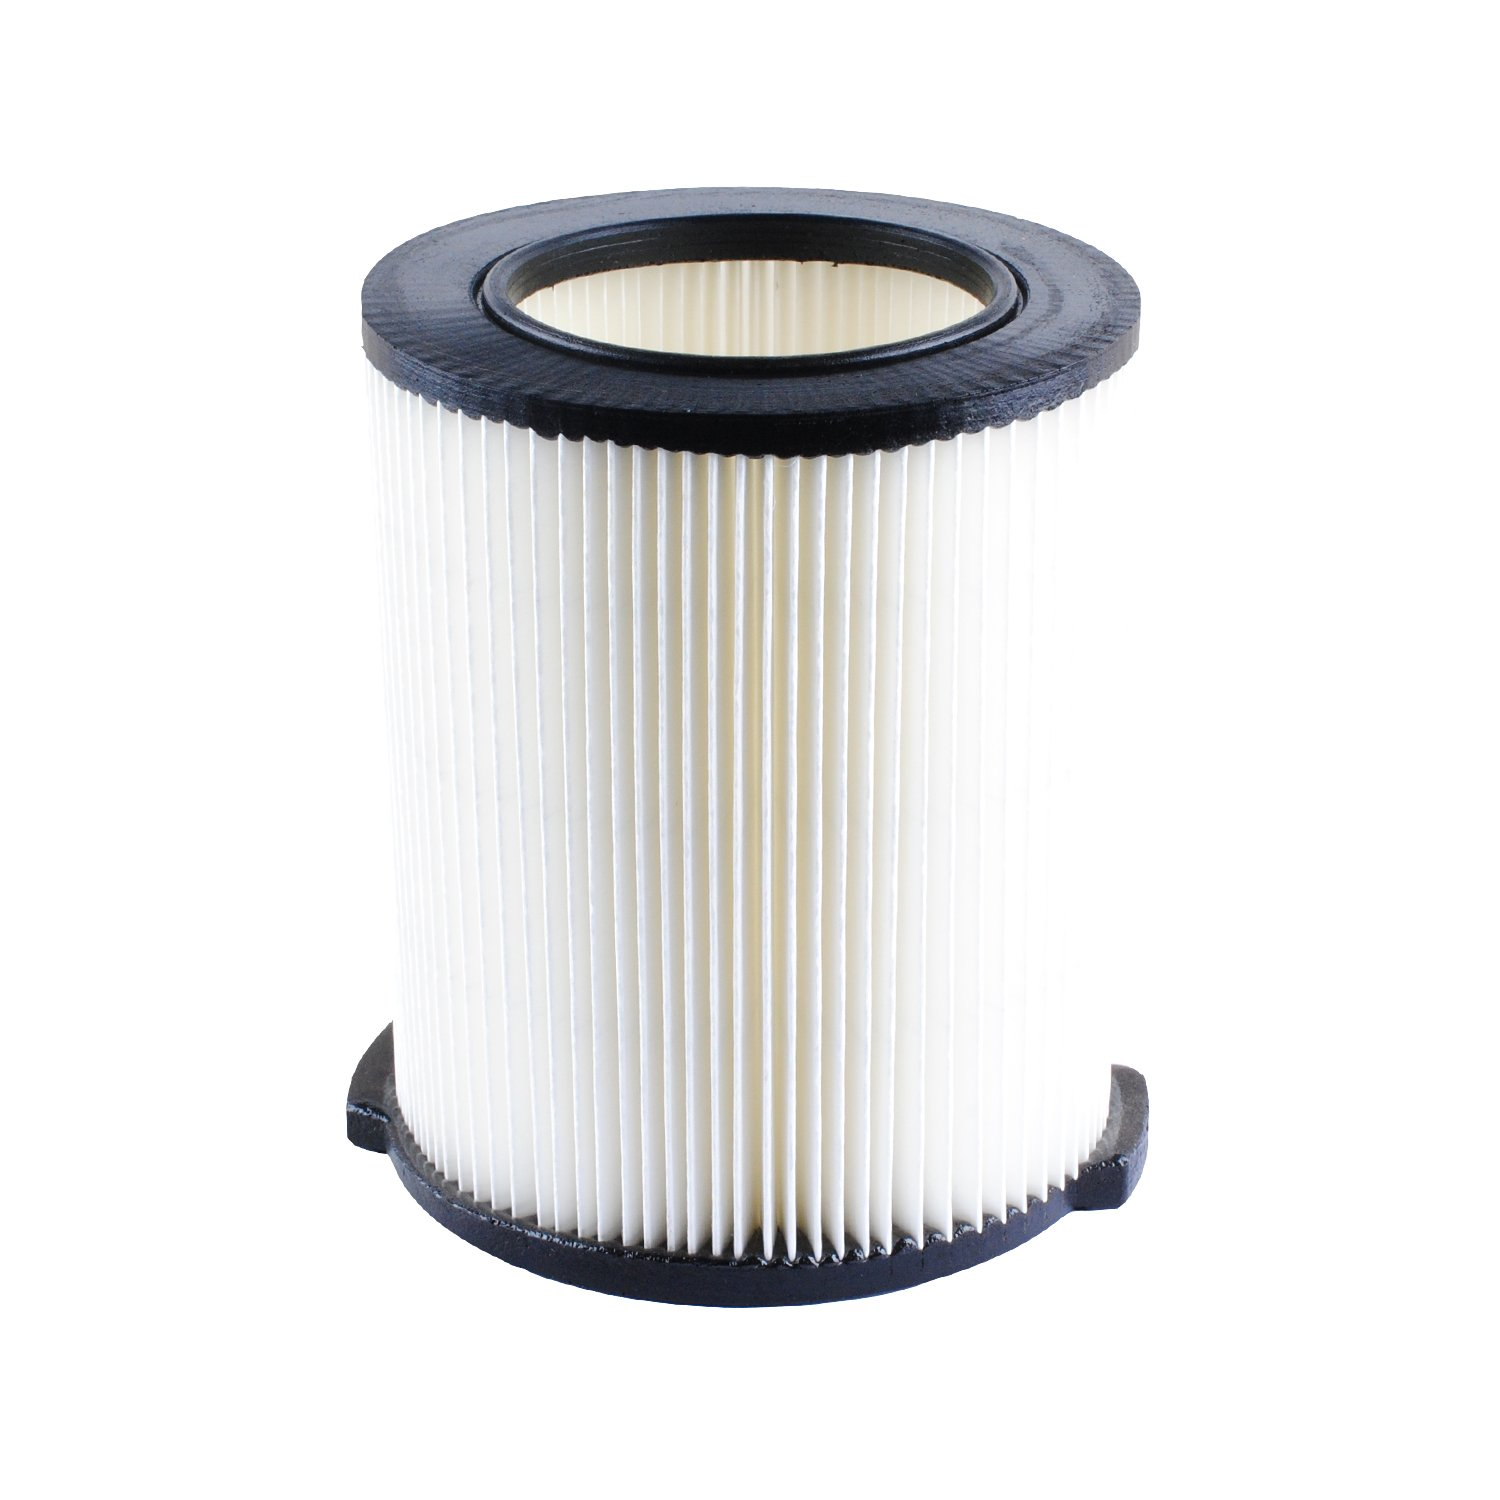 VF4000 Replacement Filter for Ridgid 72947 Wet Dry Vac 5 to 20-Gallon 6-9 Gal Husky Craftsman 17816 Vacuum Compatible WD5500 WD0671 RV2400A RV2600B Washable & Reusable Replace Ridgid VF4000 Filter